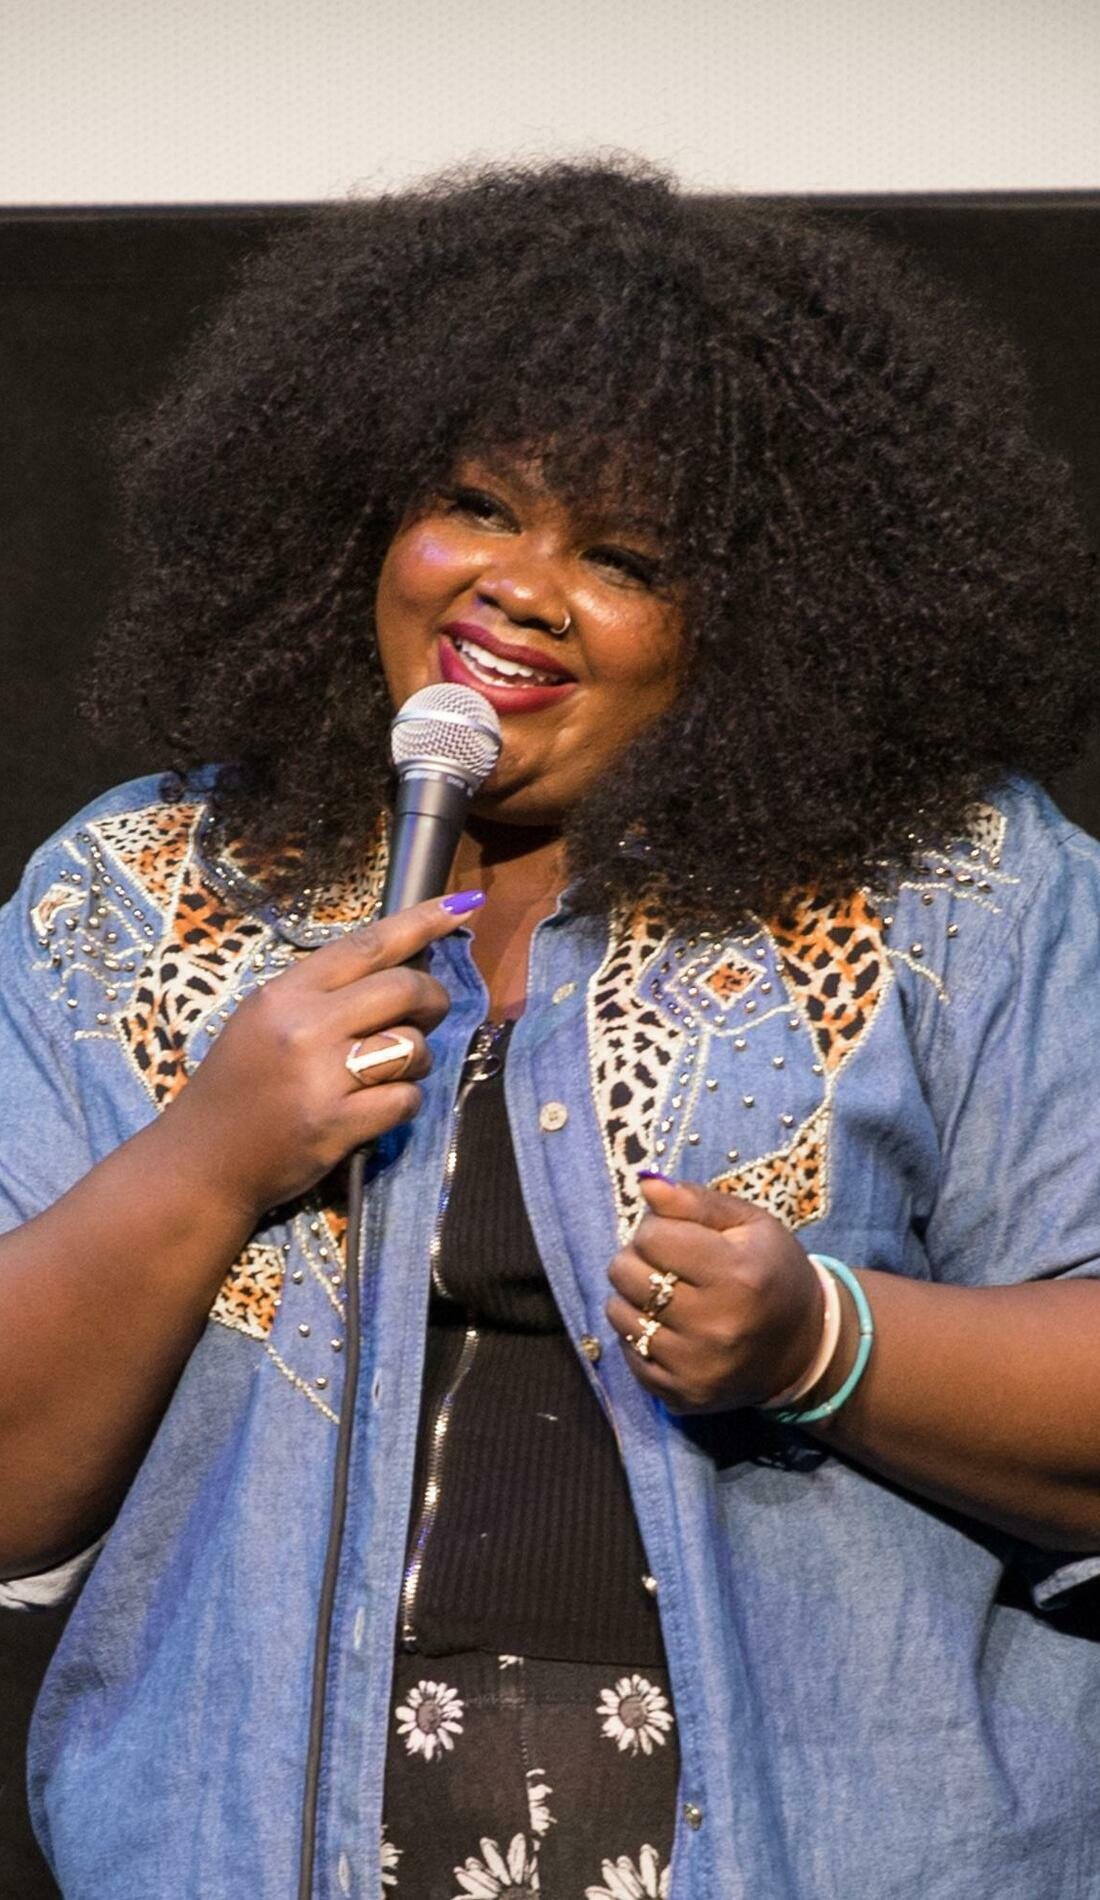 A Nicole Byer live event